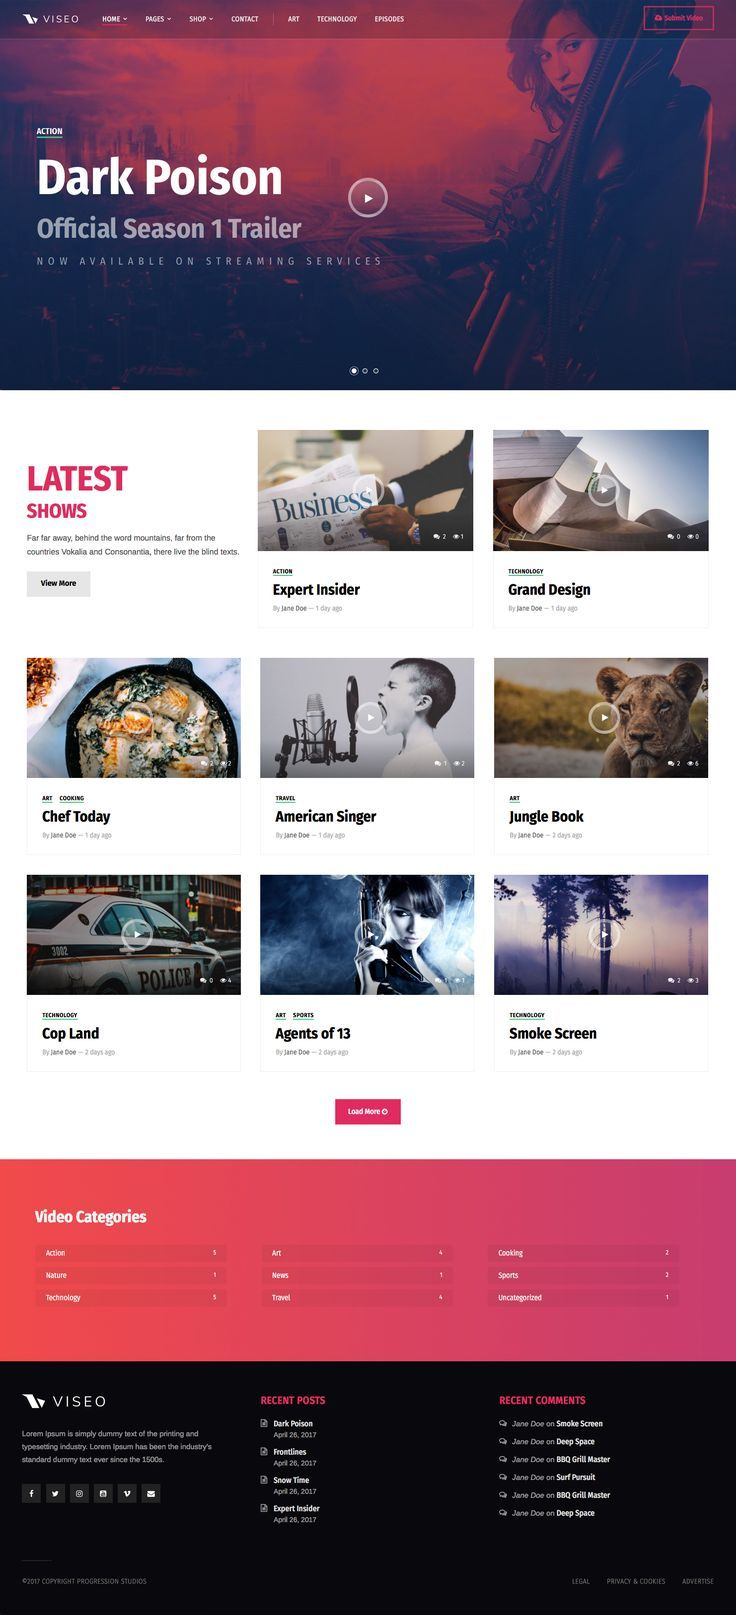 Viseo - News, Video, & Podcast Theme #wordpress #movie #news #podcast • Download ➝ https://themeforest.net/item/viseo-news-video-podcast-theme/19871406?ref=rabosch